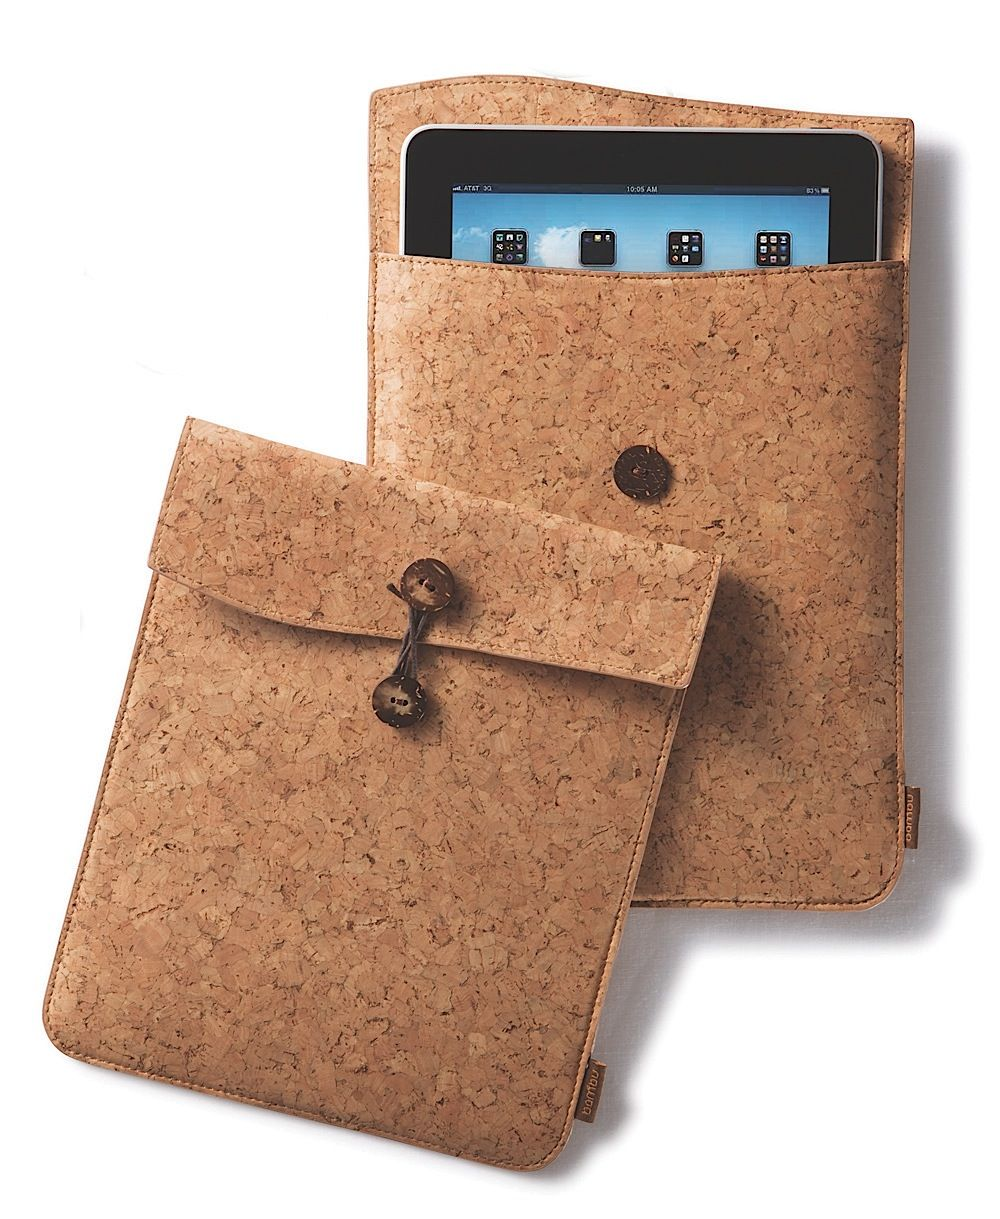 5a76606da4a3b bambu s iPad Travel Case. Fashioned after the old school manila envelope.  Made from eco-lux cork fabric. Durable and soft